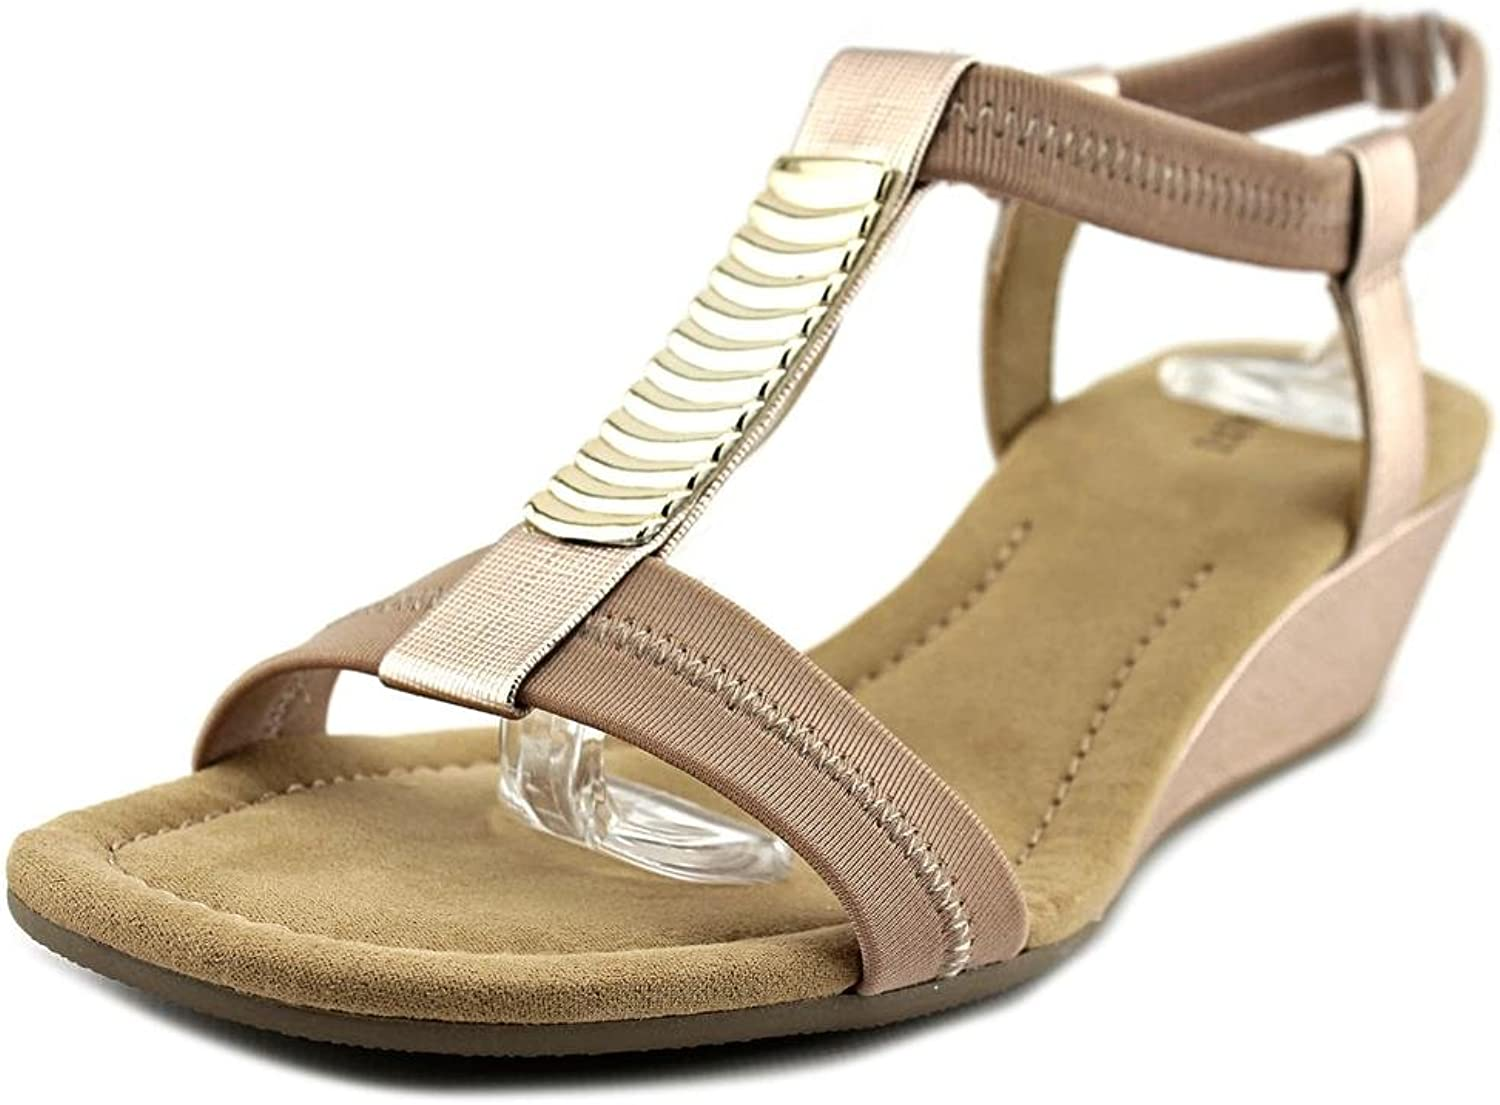 Alfani Womens Vacay Open Toe Casual Platform Sandals